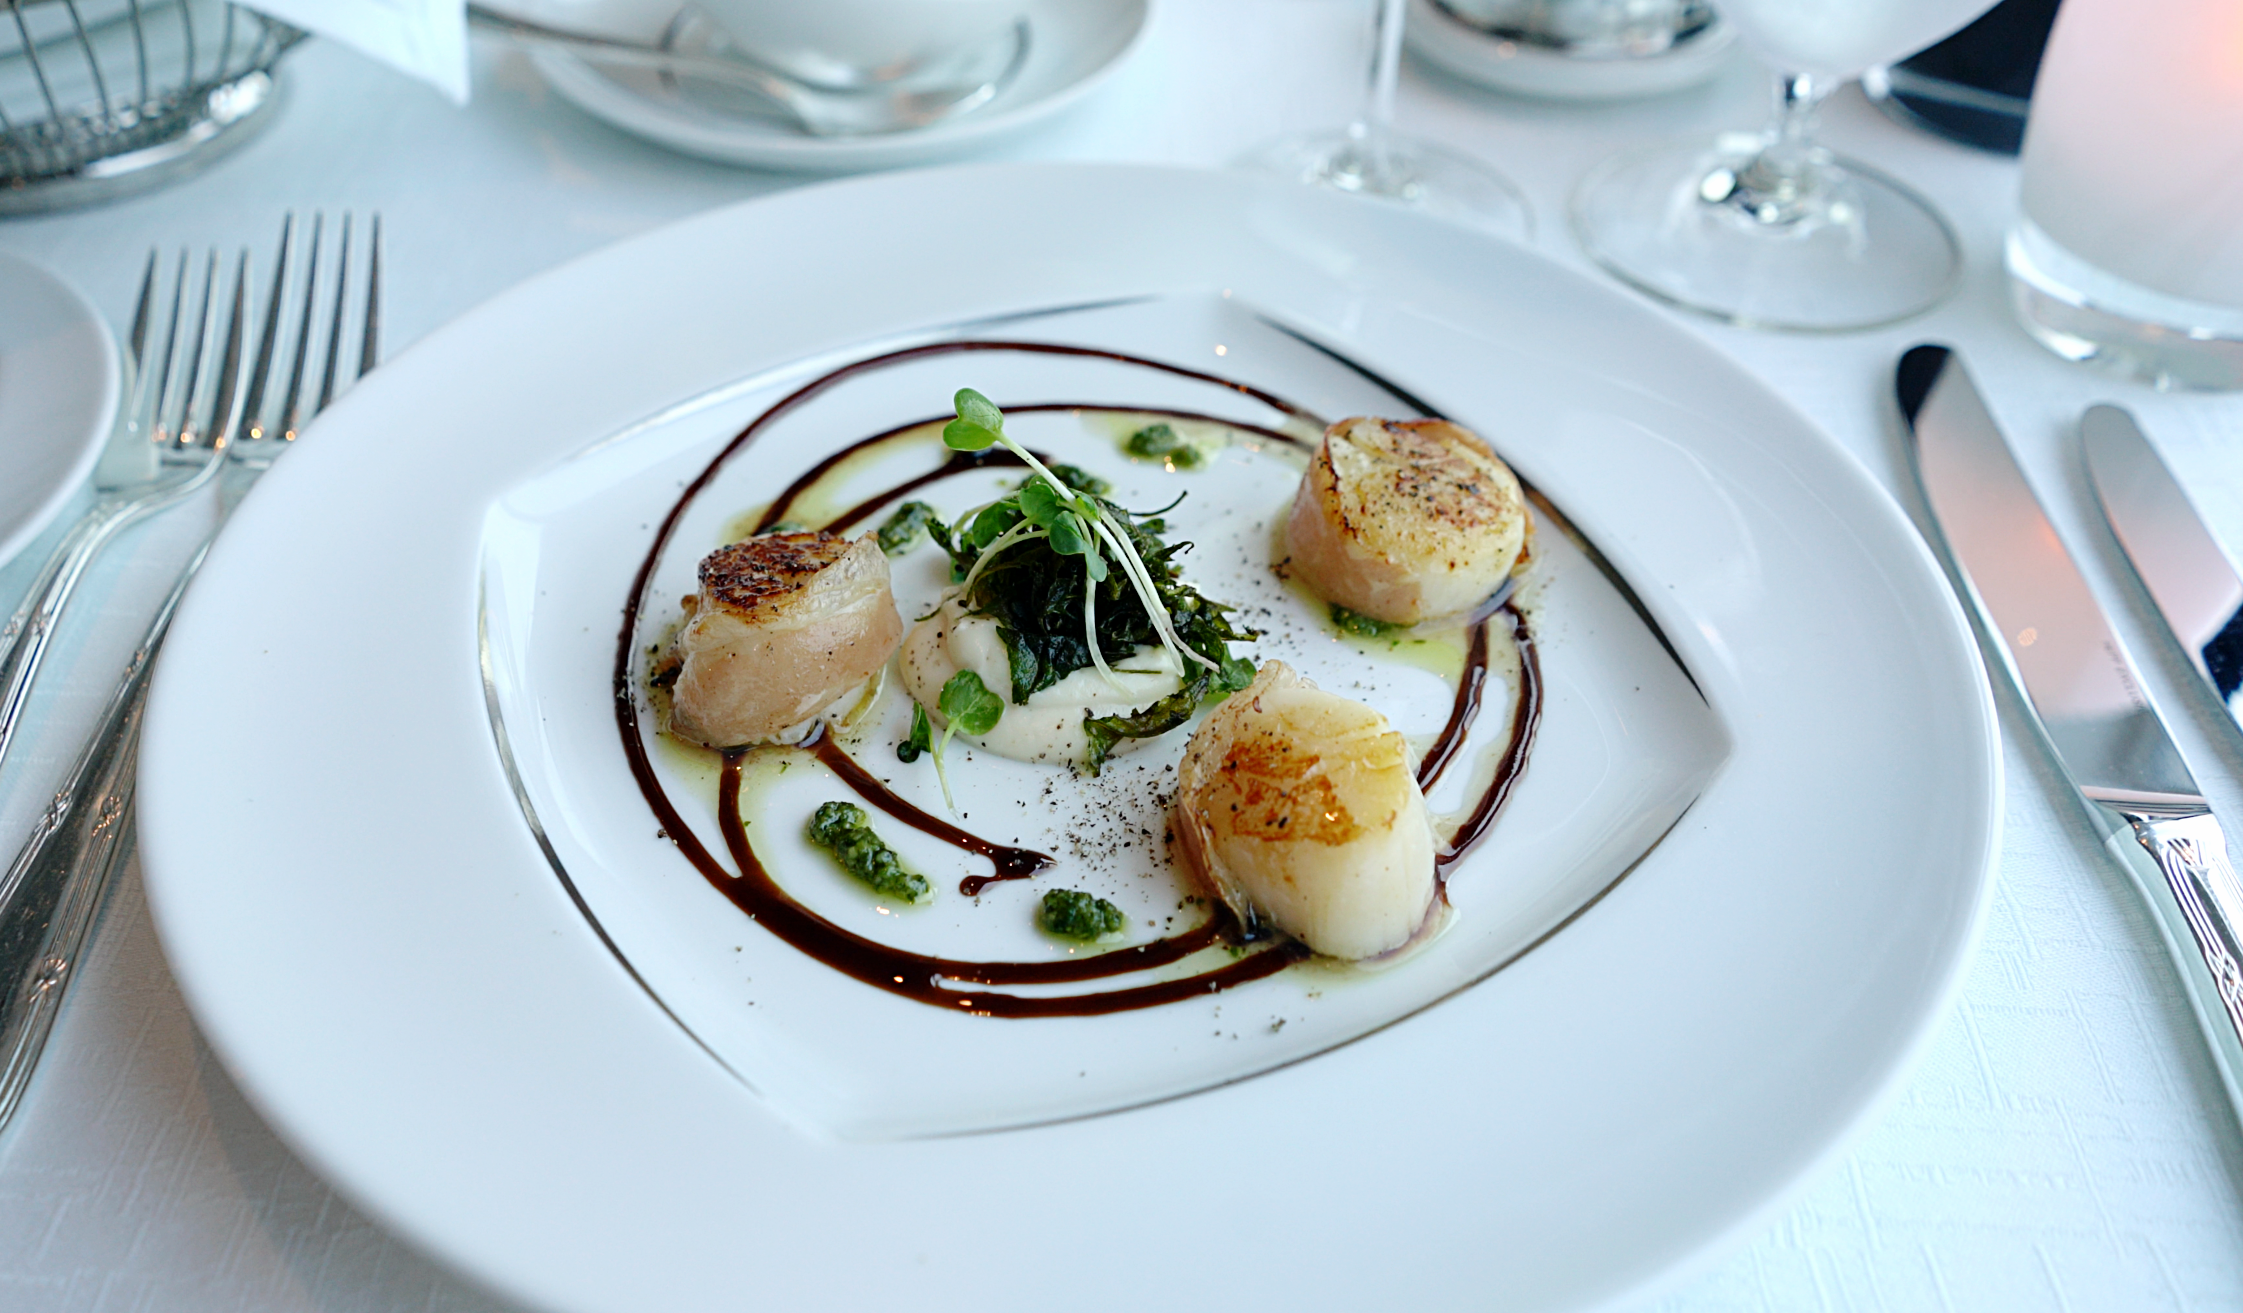 The scallop starter in the Aqualina restaurant.